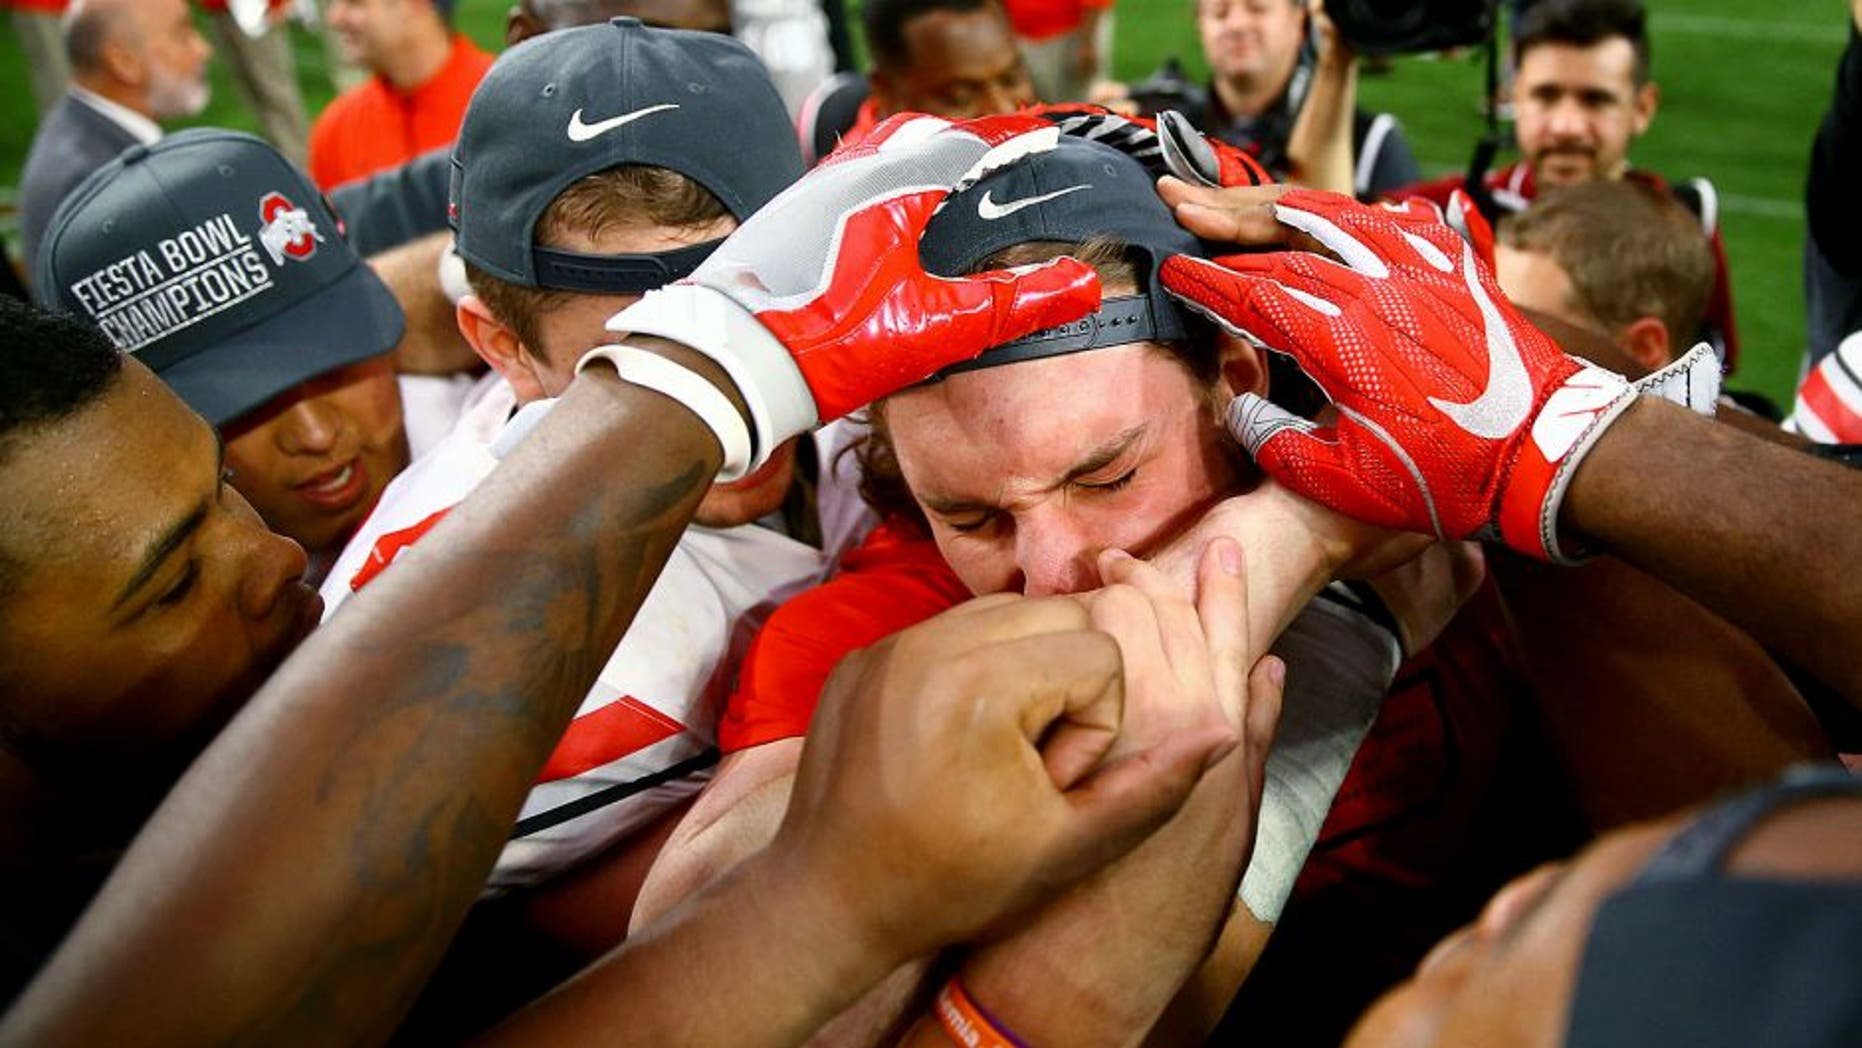 Jan 1, 2016; Glendale, AZ, USA; Ohio State Buckeyes defensive lineman Joey Bosa reacts as he celebrates with teammates on the field following the game against the Notre Dame Fighting Irish during the 2016 Fiesta Bowl at University of Phoenix Stadium. The Buckeyes defeated the Fighting Irish 44-28. Bosa was ejected in the first quarter for targeting. Mandatory Credit: Mark J. Rebilas-USA TODAY Sports